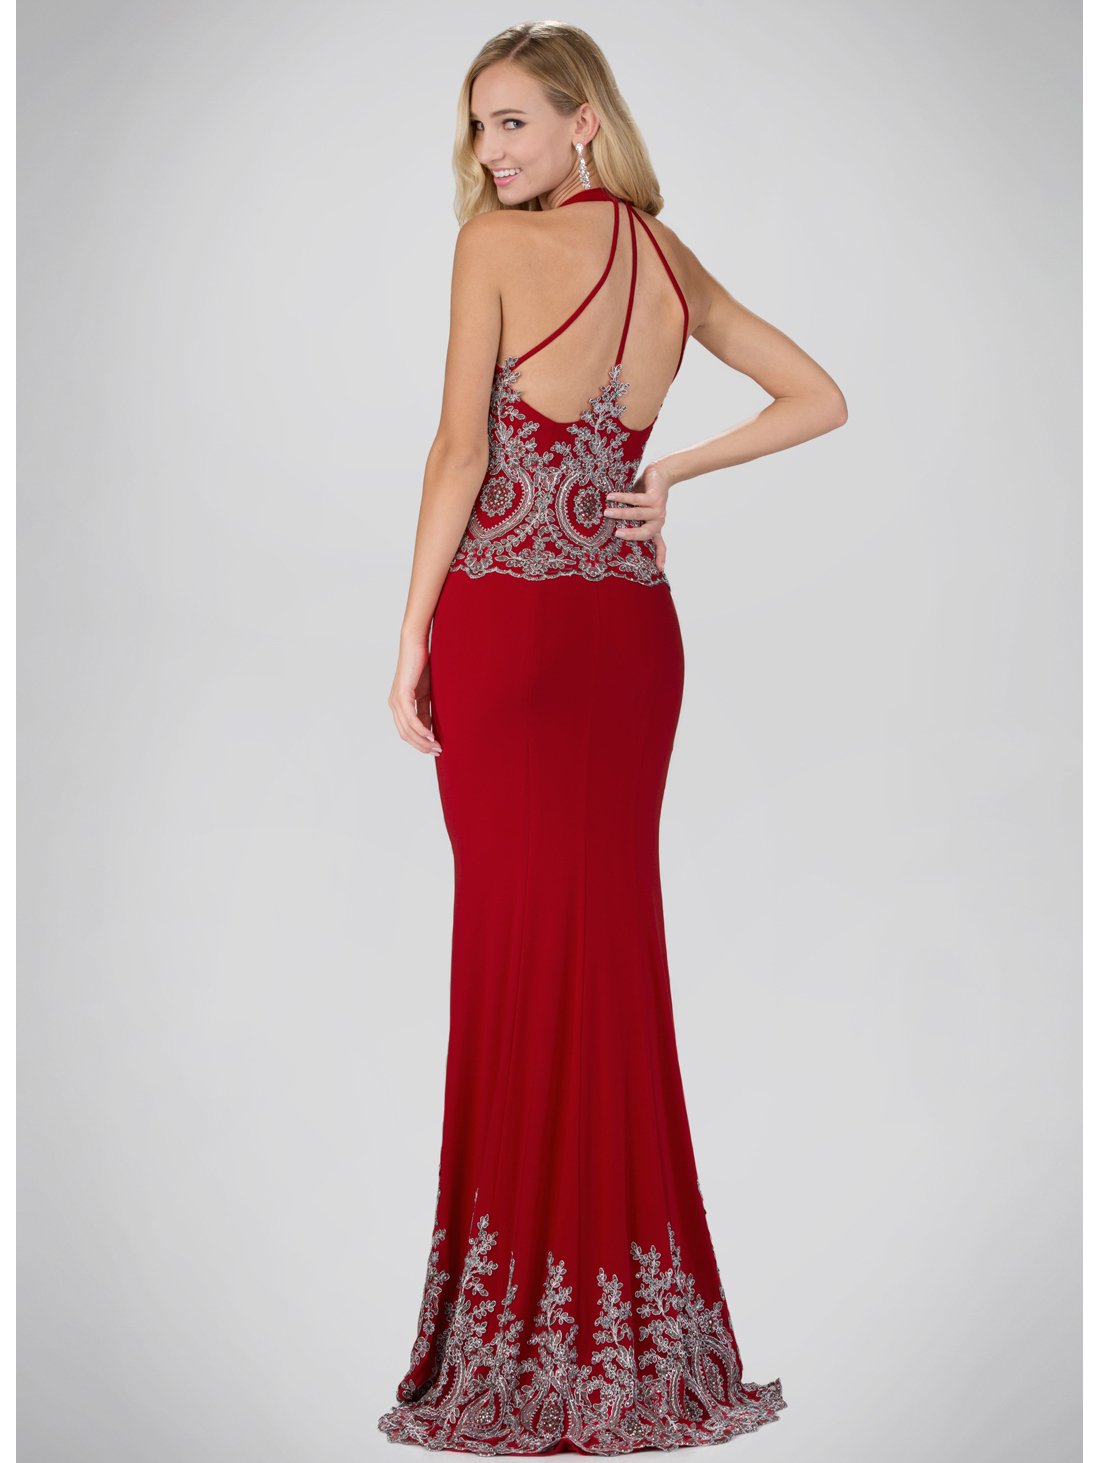 Red Carpet Inspired Halter Top Evening Dress with Train | Sung ...